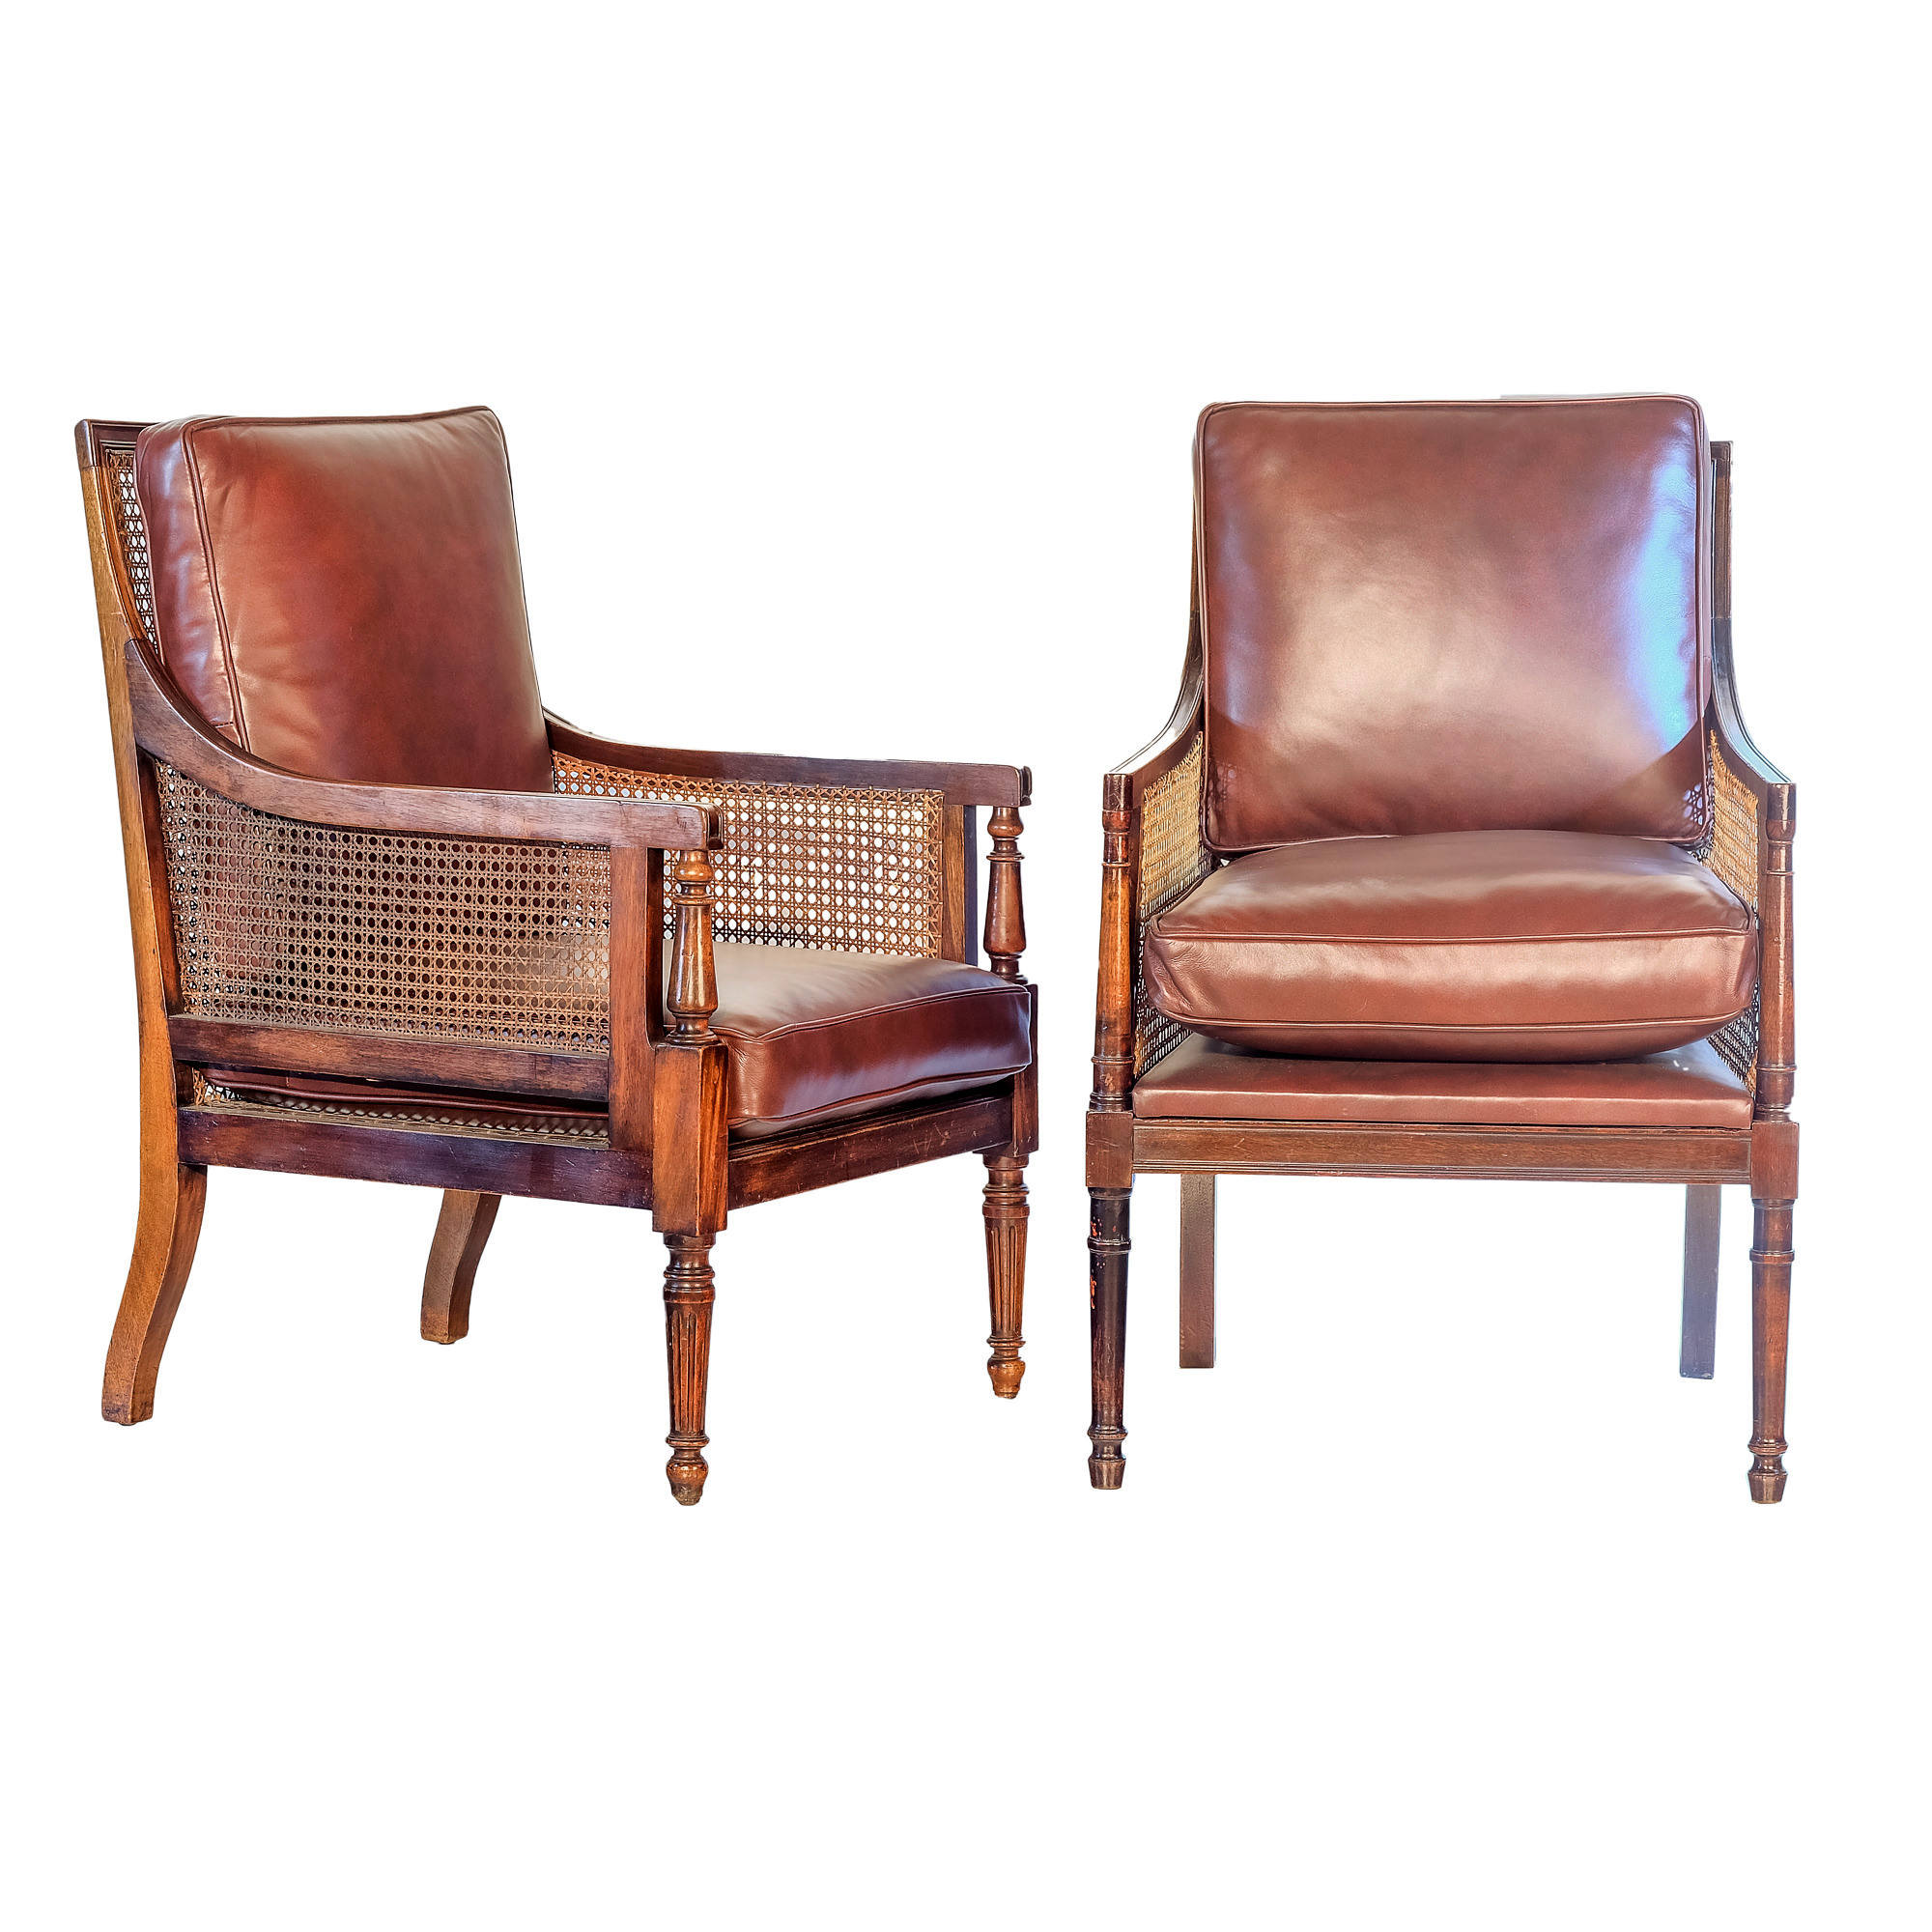 'Near Pair Sheraton Mahogany Cane and Maroon Leather Upholstered Bergeres 19th Century'